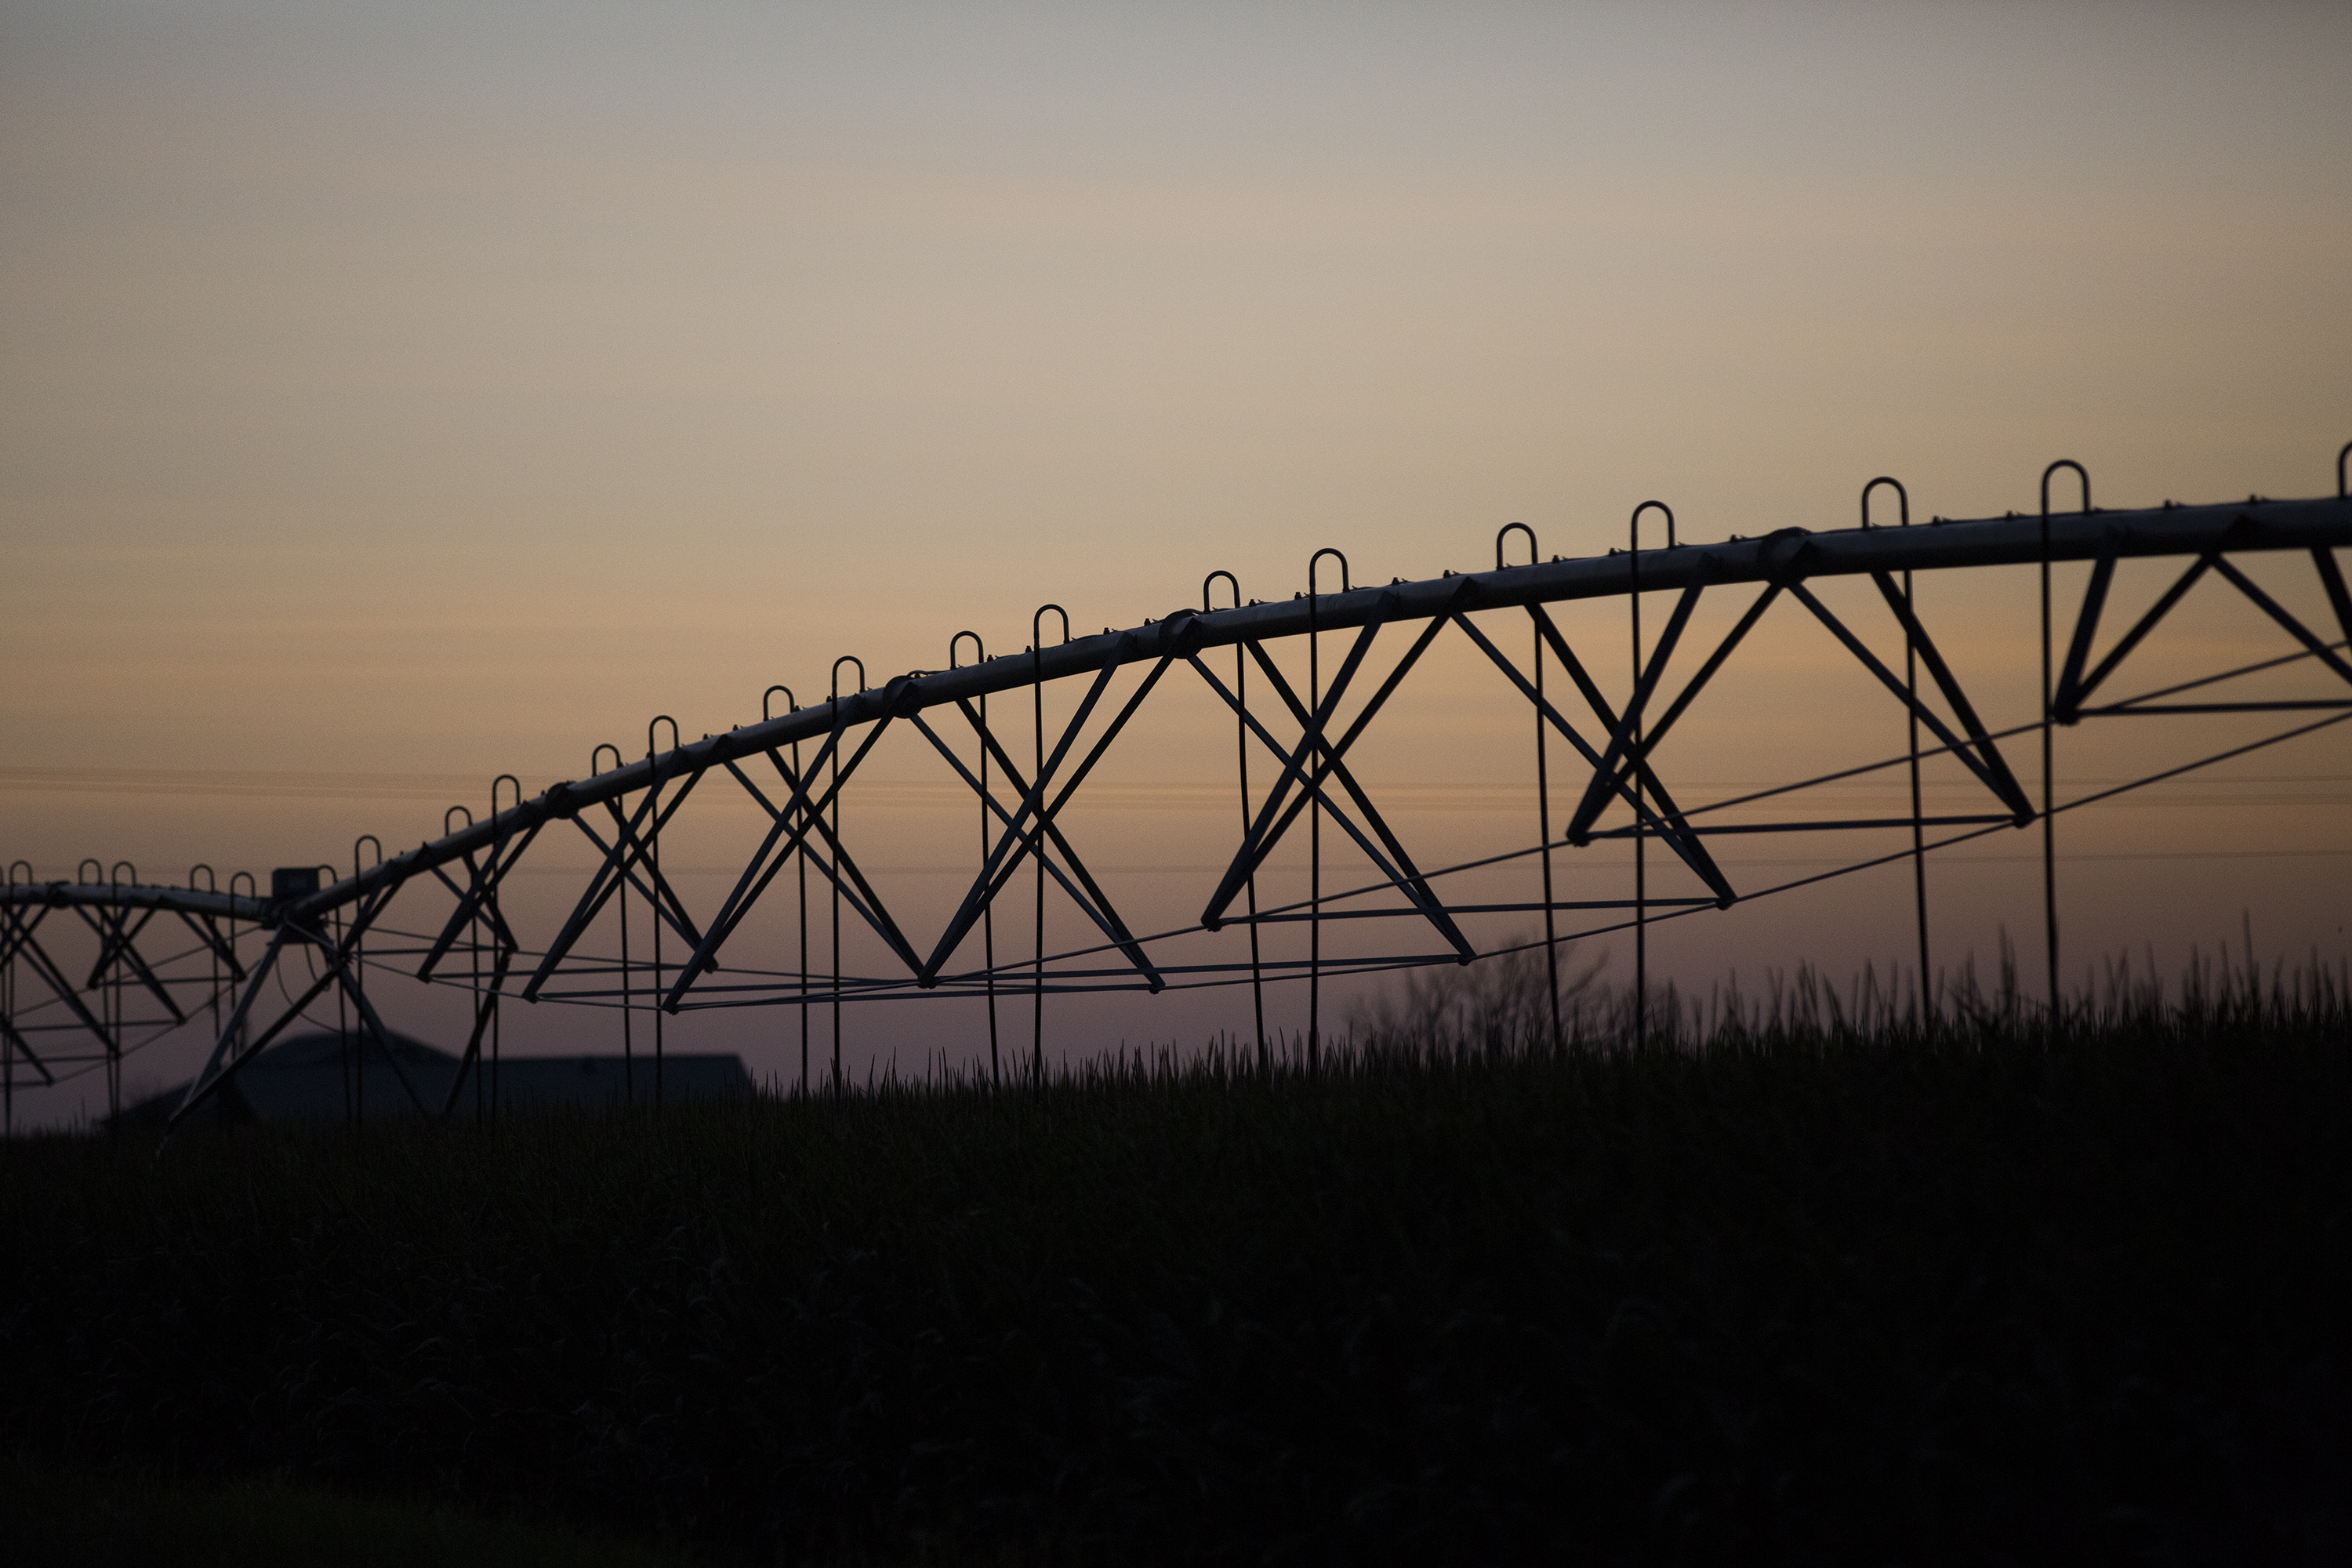 "A center pivot irrigation system above corn fields north of Julesburg. There are more than 335,000 acres being farmed in Sedgwick County, spread among more than 220 farms. The market value of farming and livestock products together was <a href=""https://www.agcensus.usda.gov/Publications/2012/Full_Report/Volume_1,_Chapter_2_County_Level/Colorado/st08_2_001_001.pdf"">worth more than $100,000,000</a> in 2012, the last year for which data was available. The county is named after Civil War Gen. John Sedgwick."